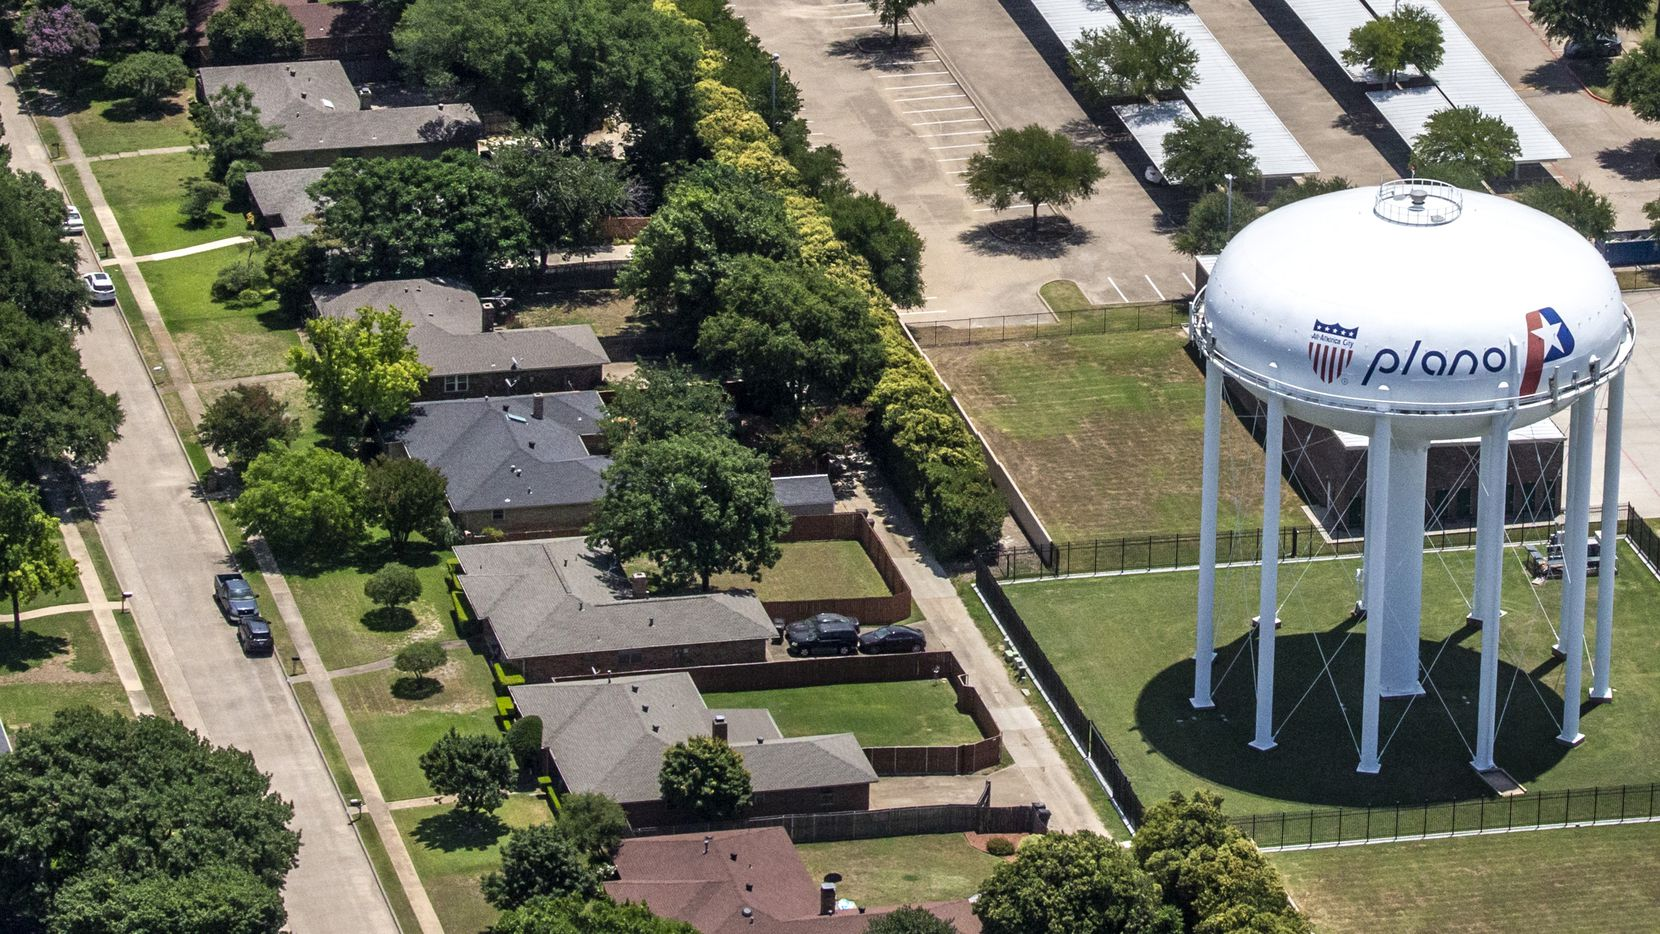 A Plano water tower in Plano, Texas, on Thursday, June 18, 2020.